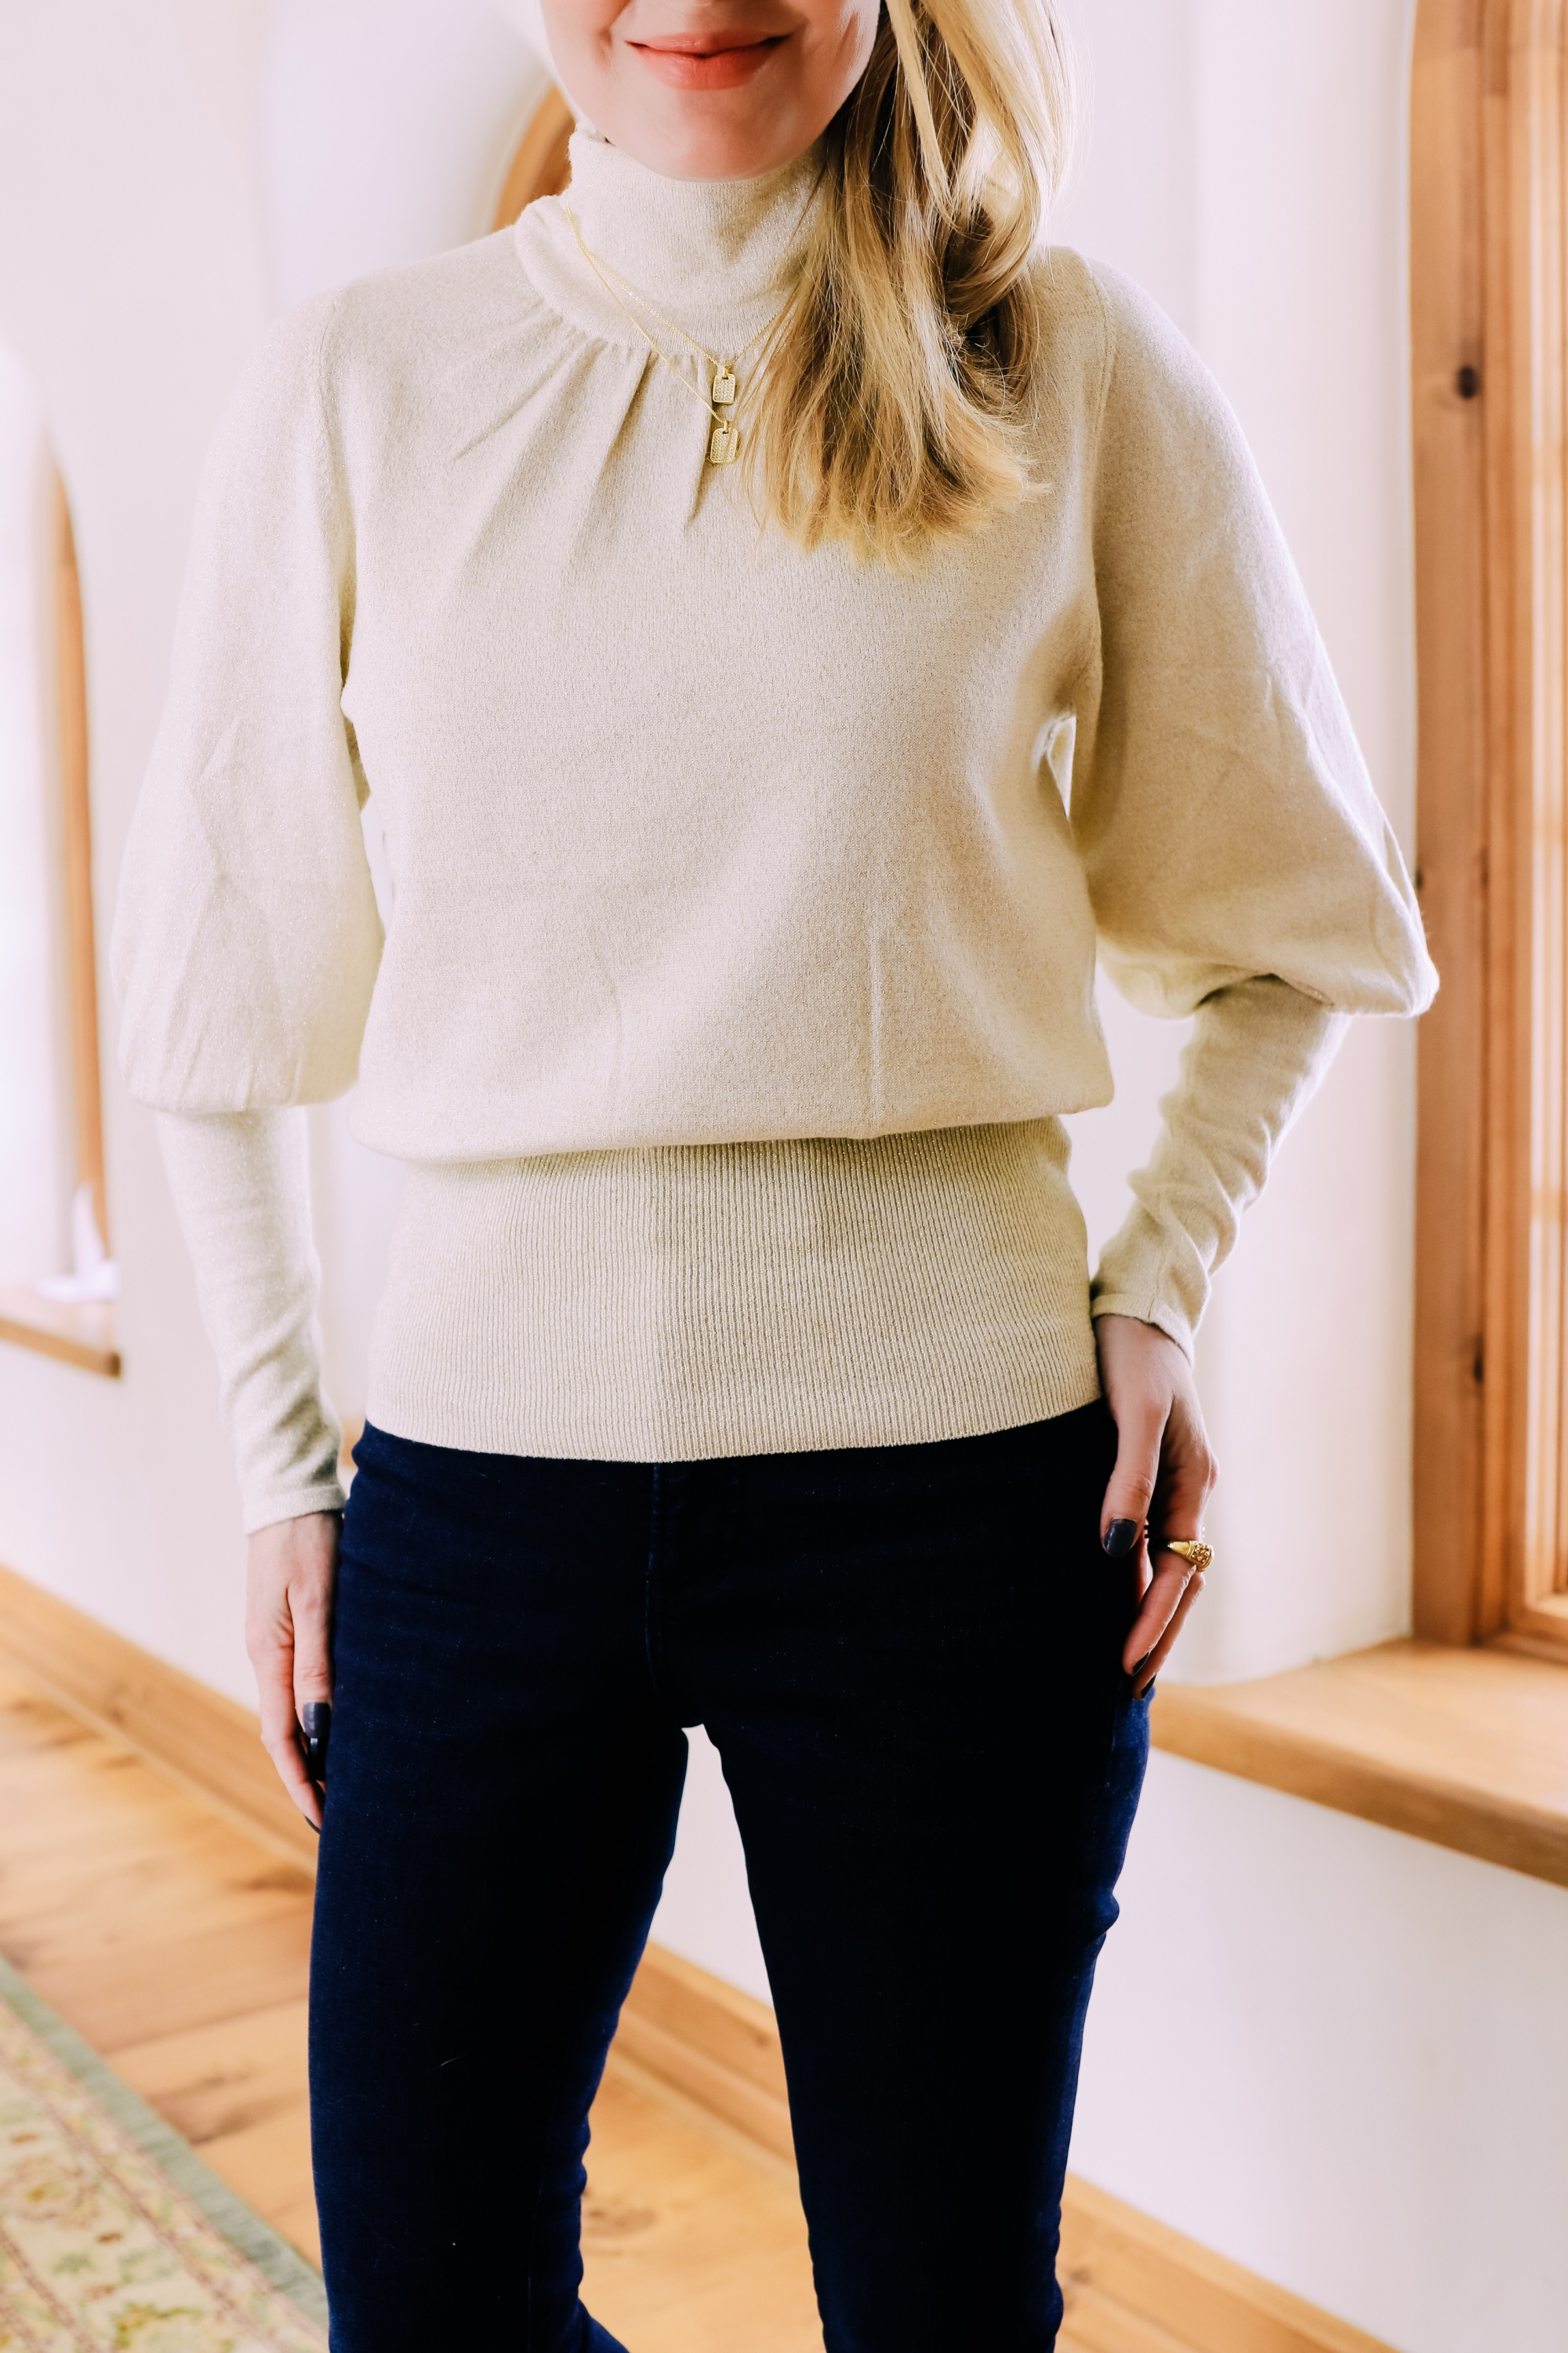 Black Friday Doorbuster, Erin Busbee of Busbee Style wearing a metallic blouson sleeve turtleneck sweater, raw step hem jeans, pave layered dog tag necklace, and cozy socks from Express in Telluride, Colorado